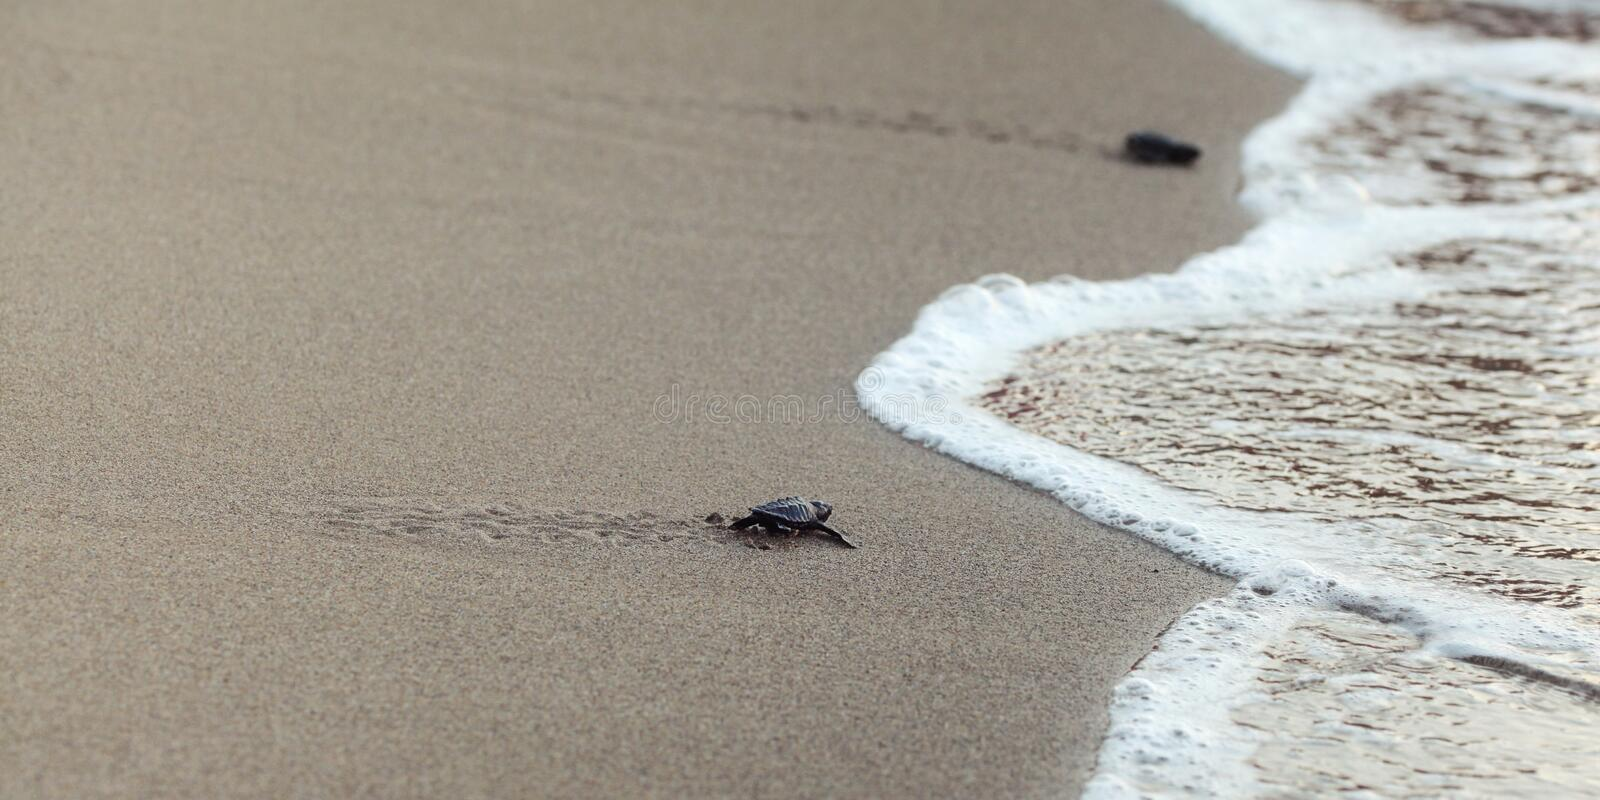 Baby turtle finding its way to the sea, detail on wet beach sand stock photo